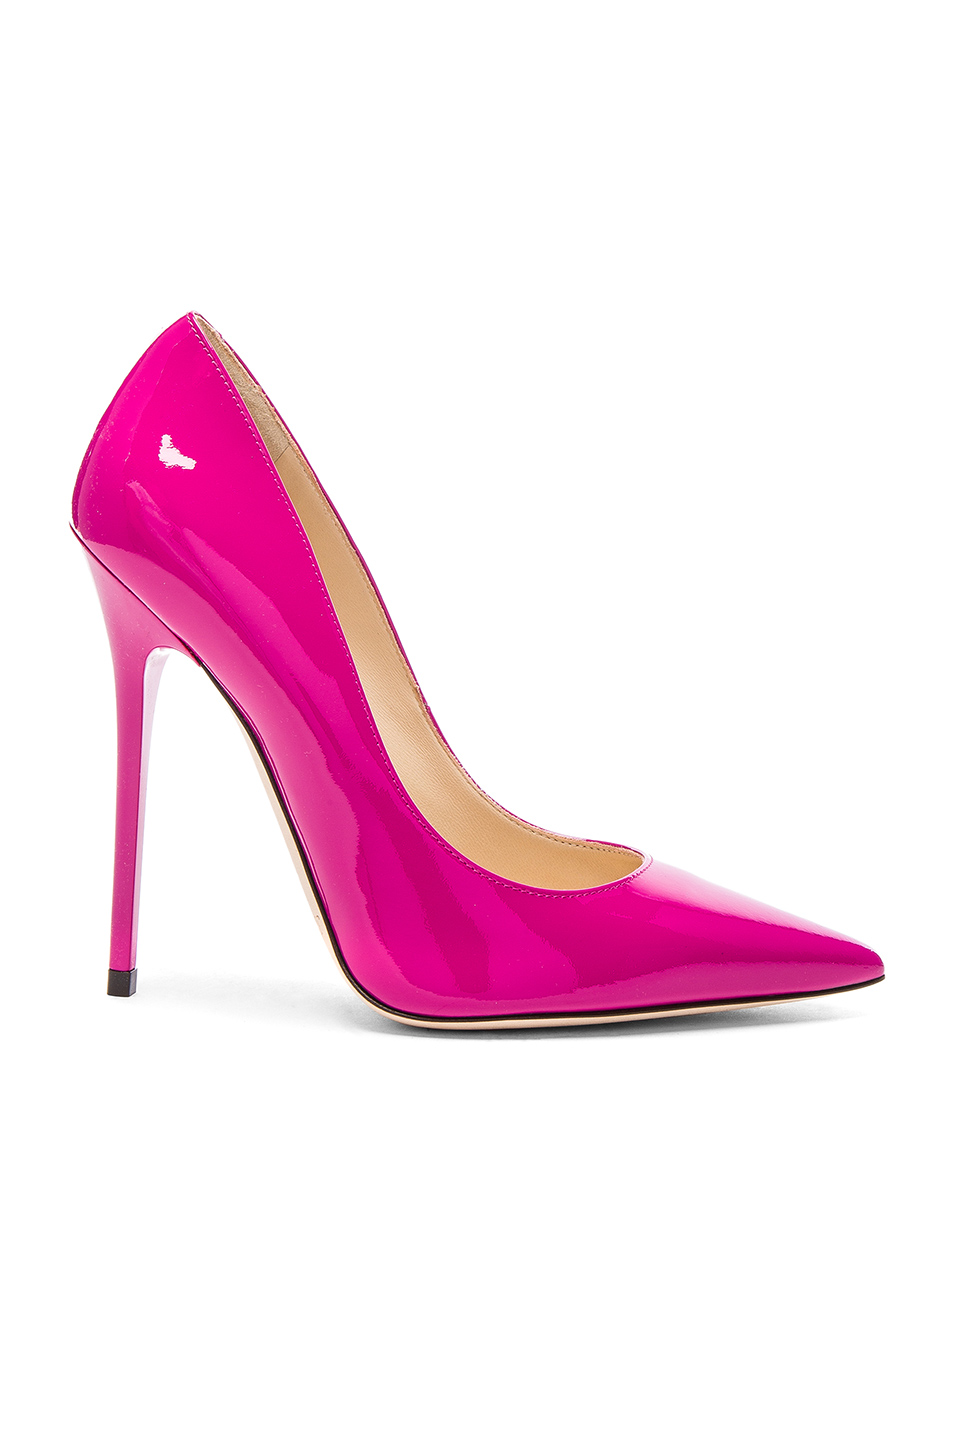 Jimmy Choo Patent Leather Anouk Heels in Pink